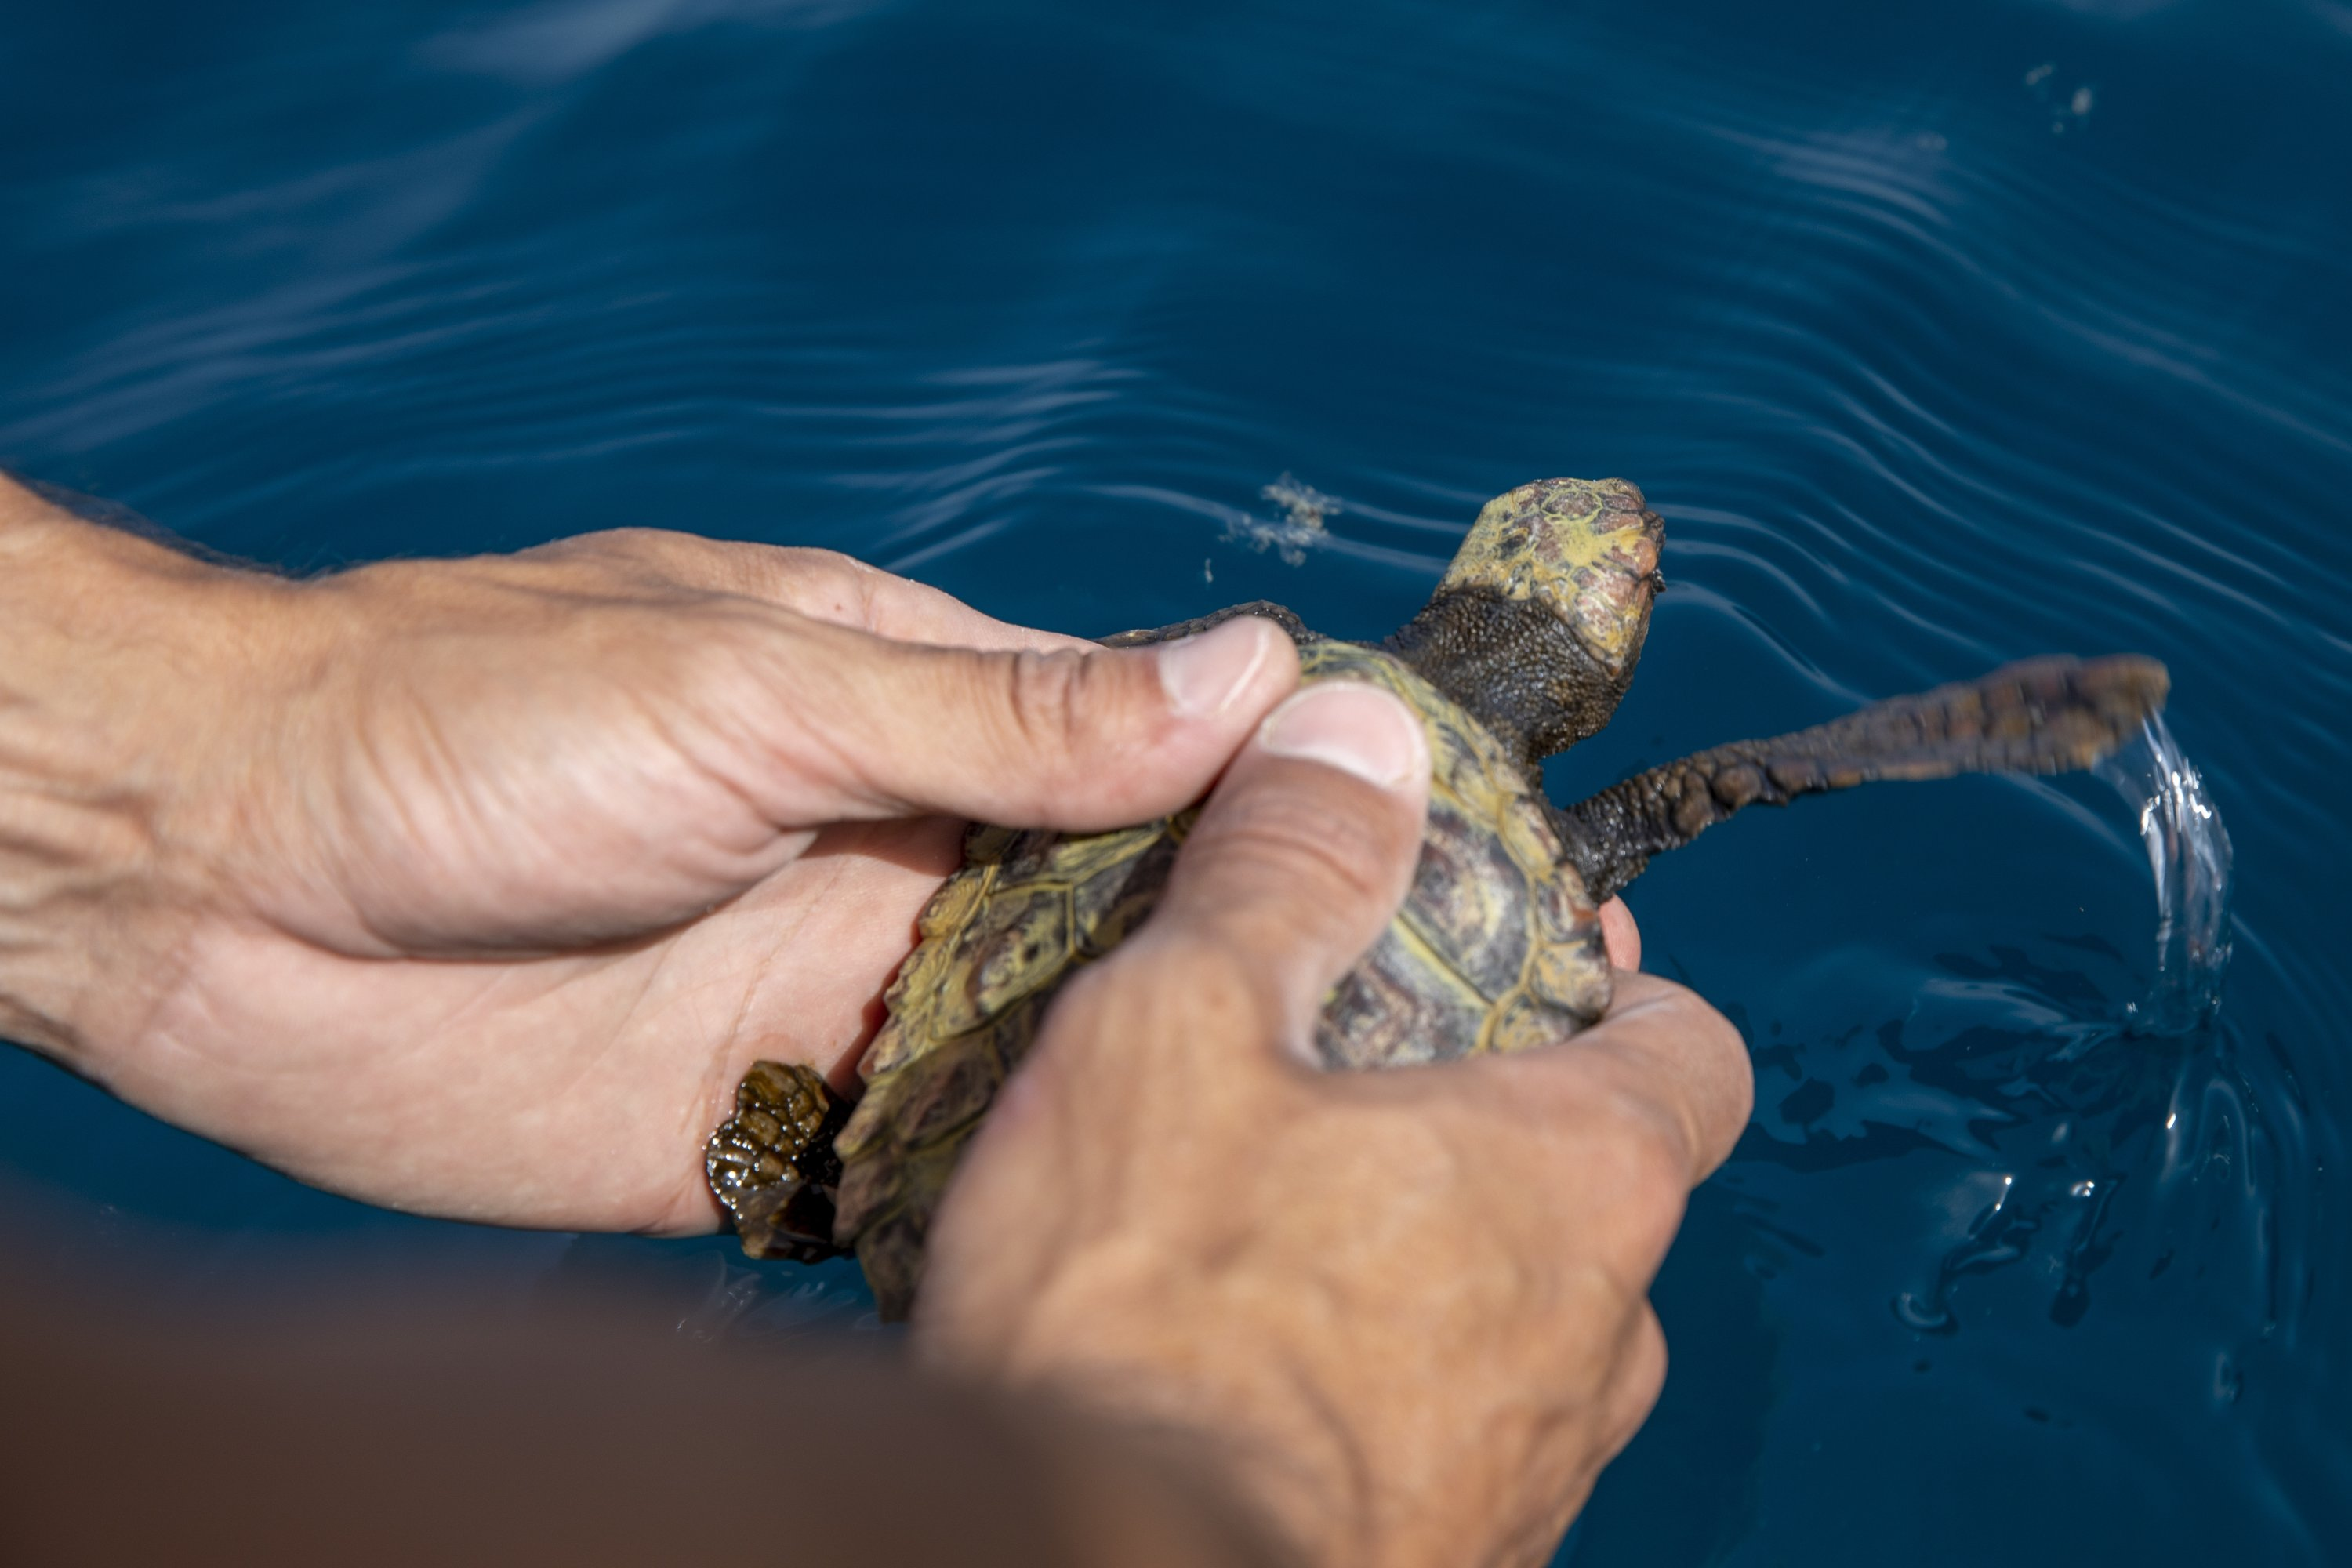 Gregory Kobzar release a 8-month-old sea turtle in the Mediterranean Sea off the coast in Michmoret, Israel, on Apr. 7, 2021. (AP Photo)